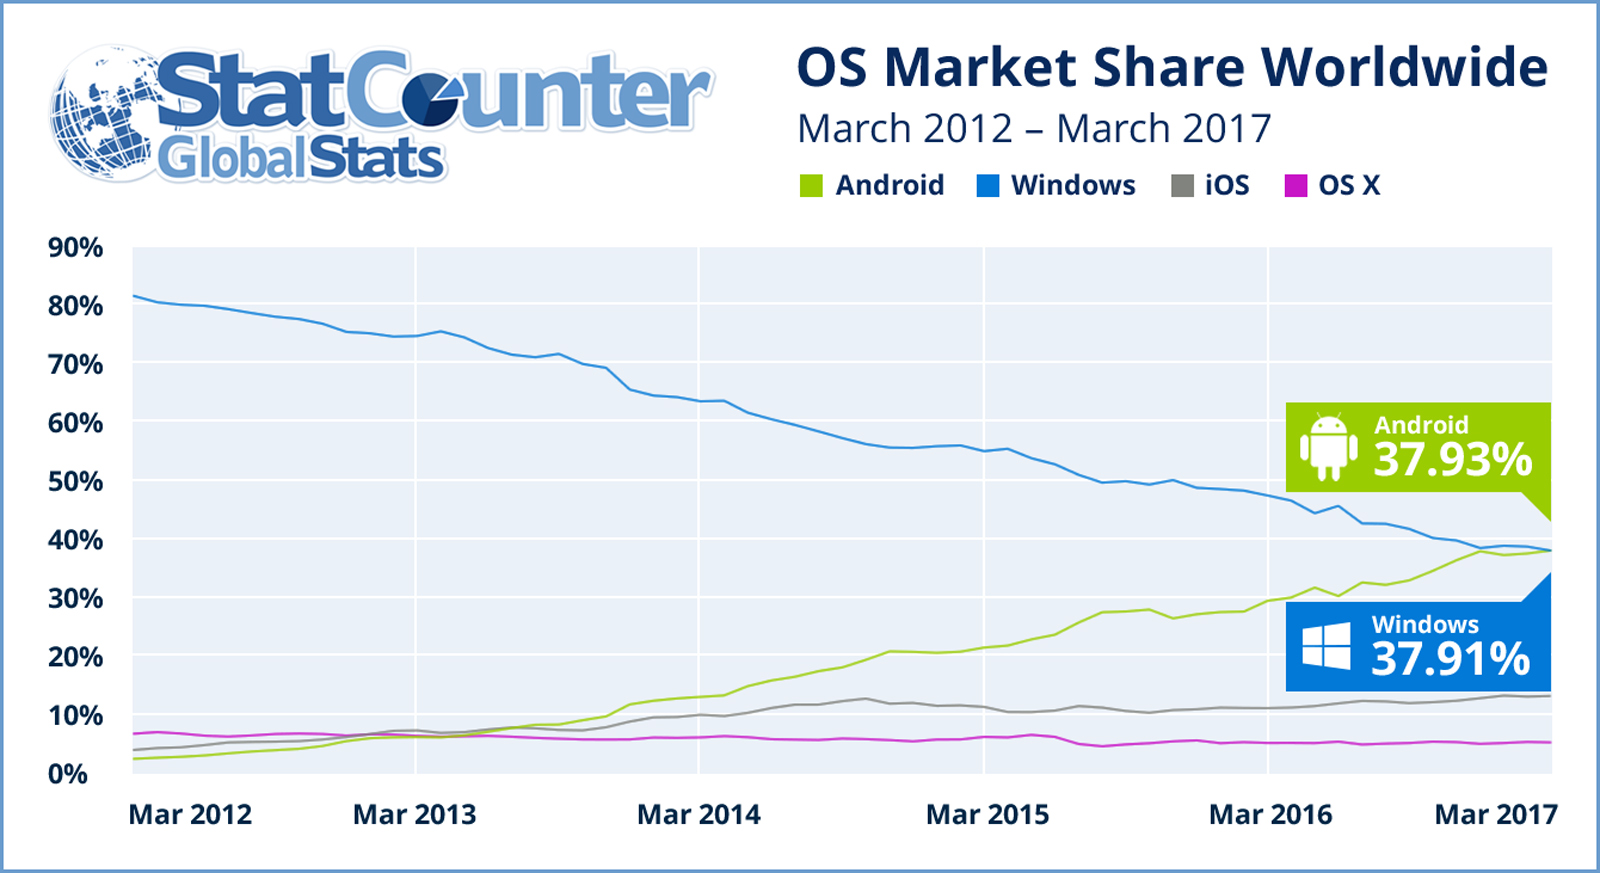 Internet usage share in March 2017